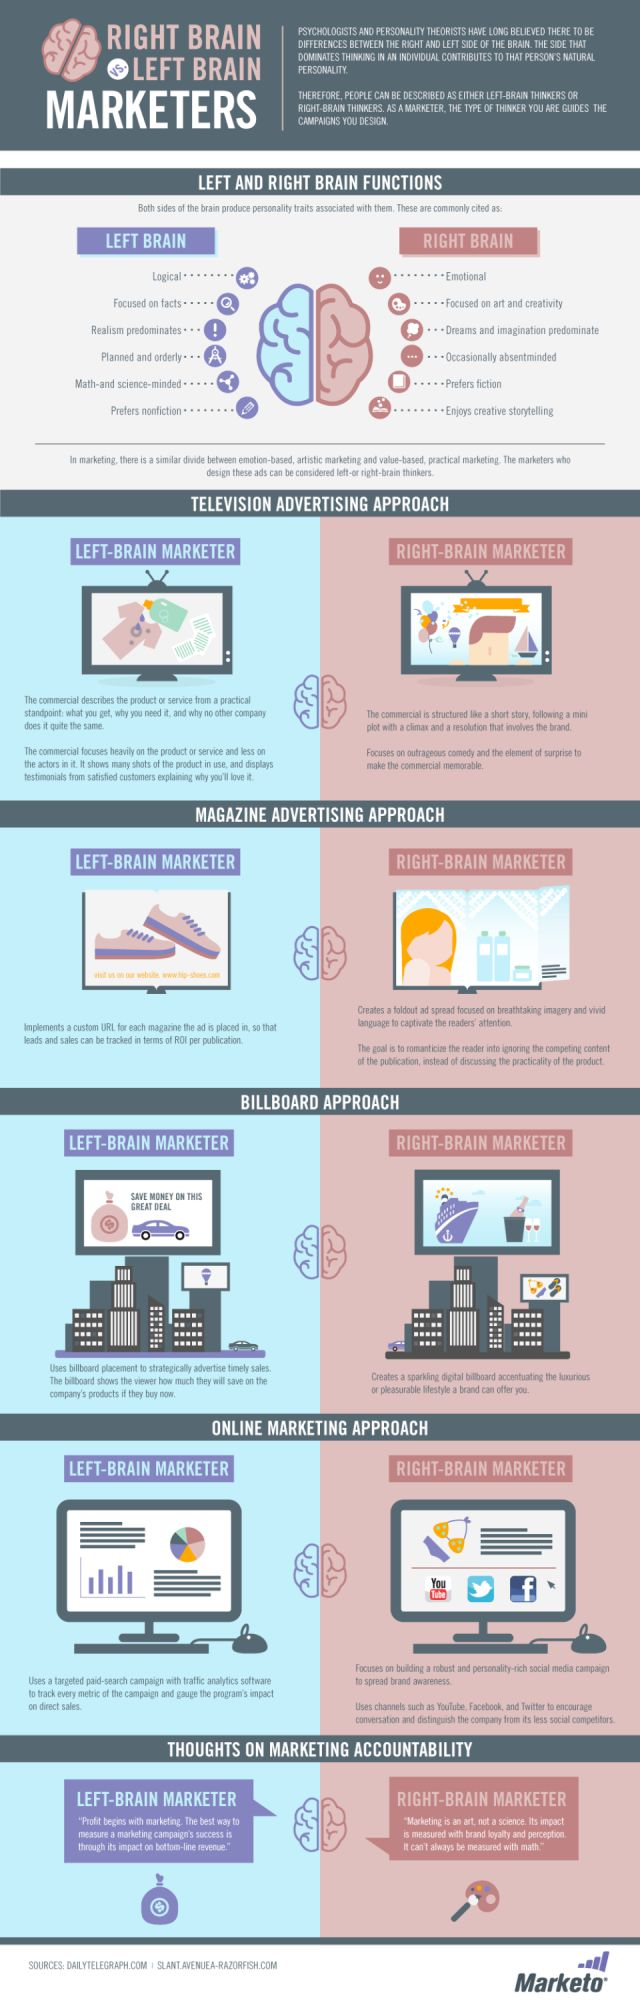 Marketer Brain Infographic - Left vs. right brained marketers